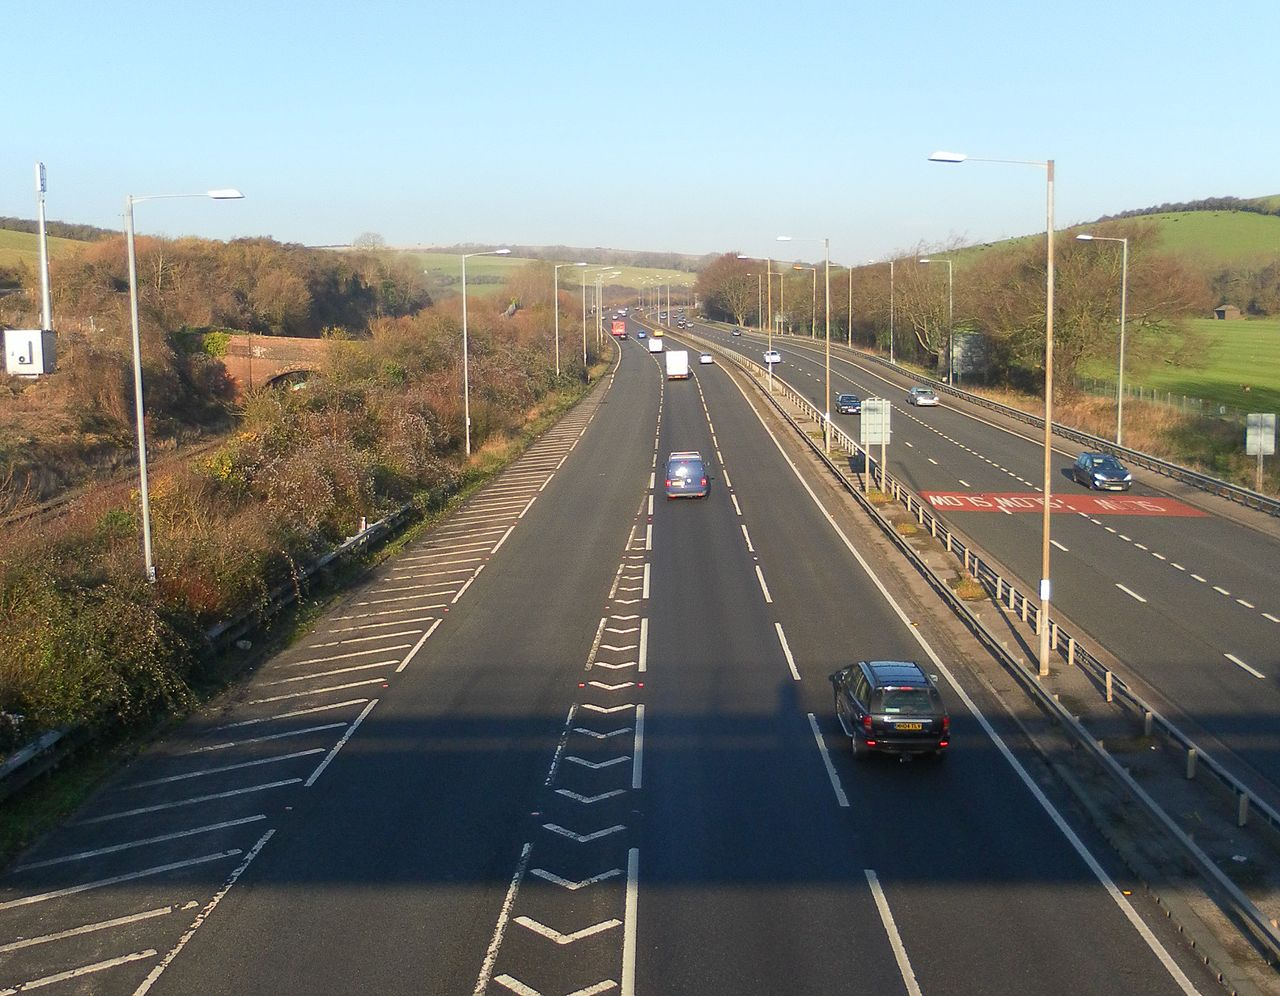 Northward_view_of_A23_and_Brighton_Main_Line_from_footbridge_near_Braypool_Lane,_Patcham_(December_2012)